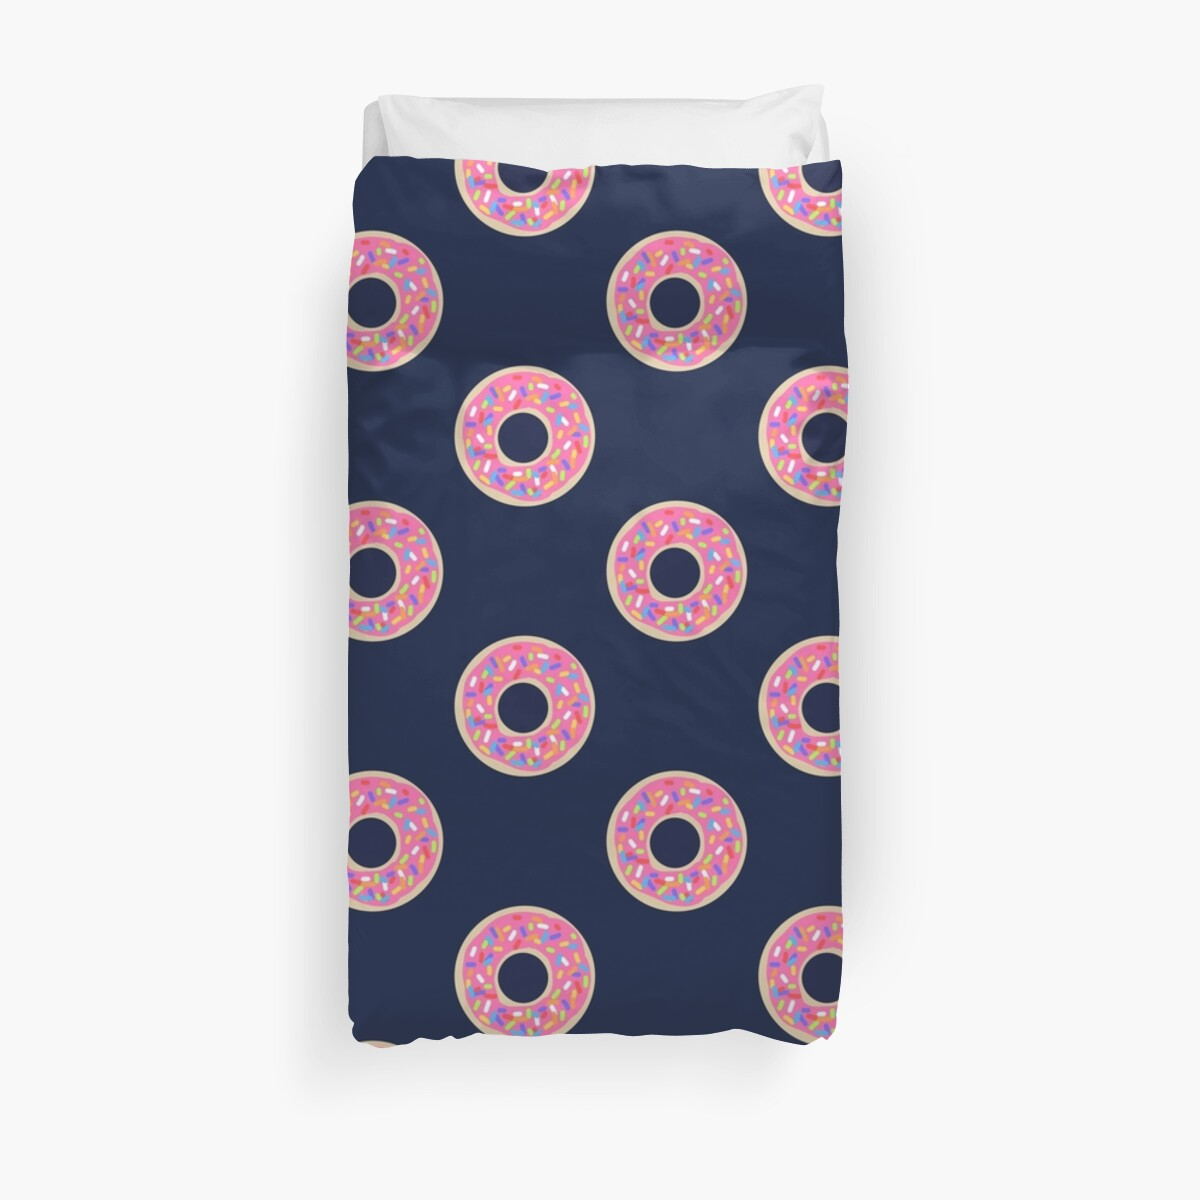 Donuts, Donuts & More Donuts by aussieidiots